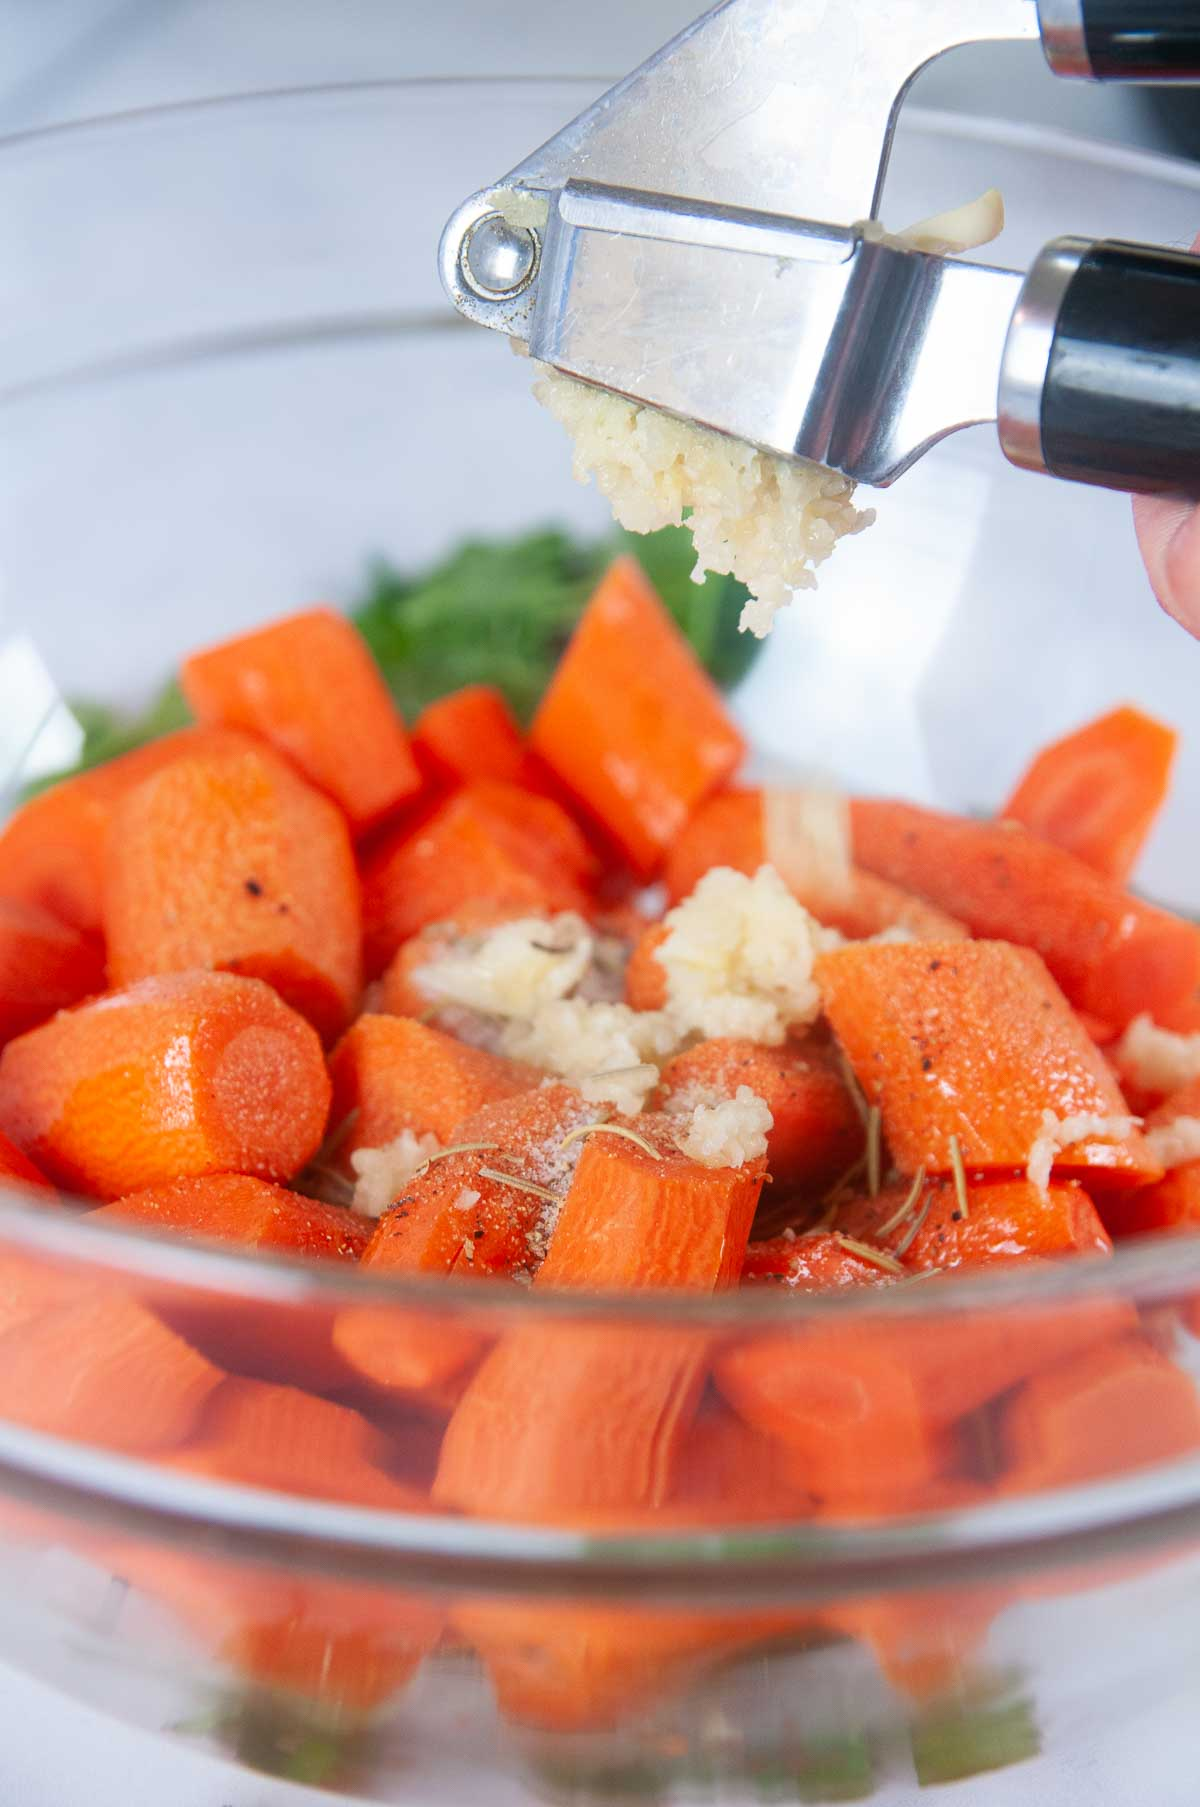 Season the carrots with fresh pressed garlic and herbs.